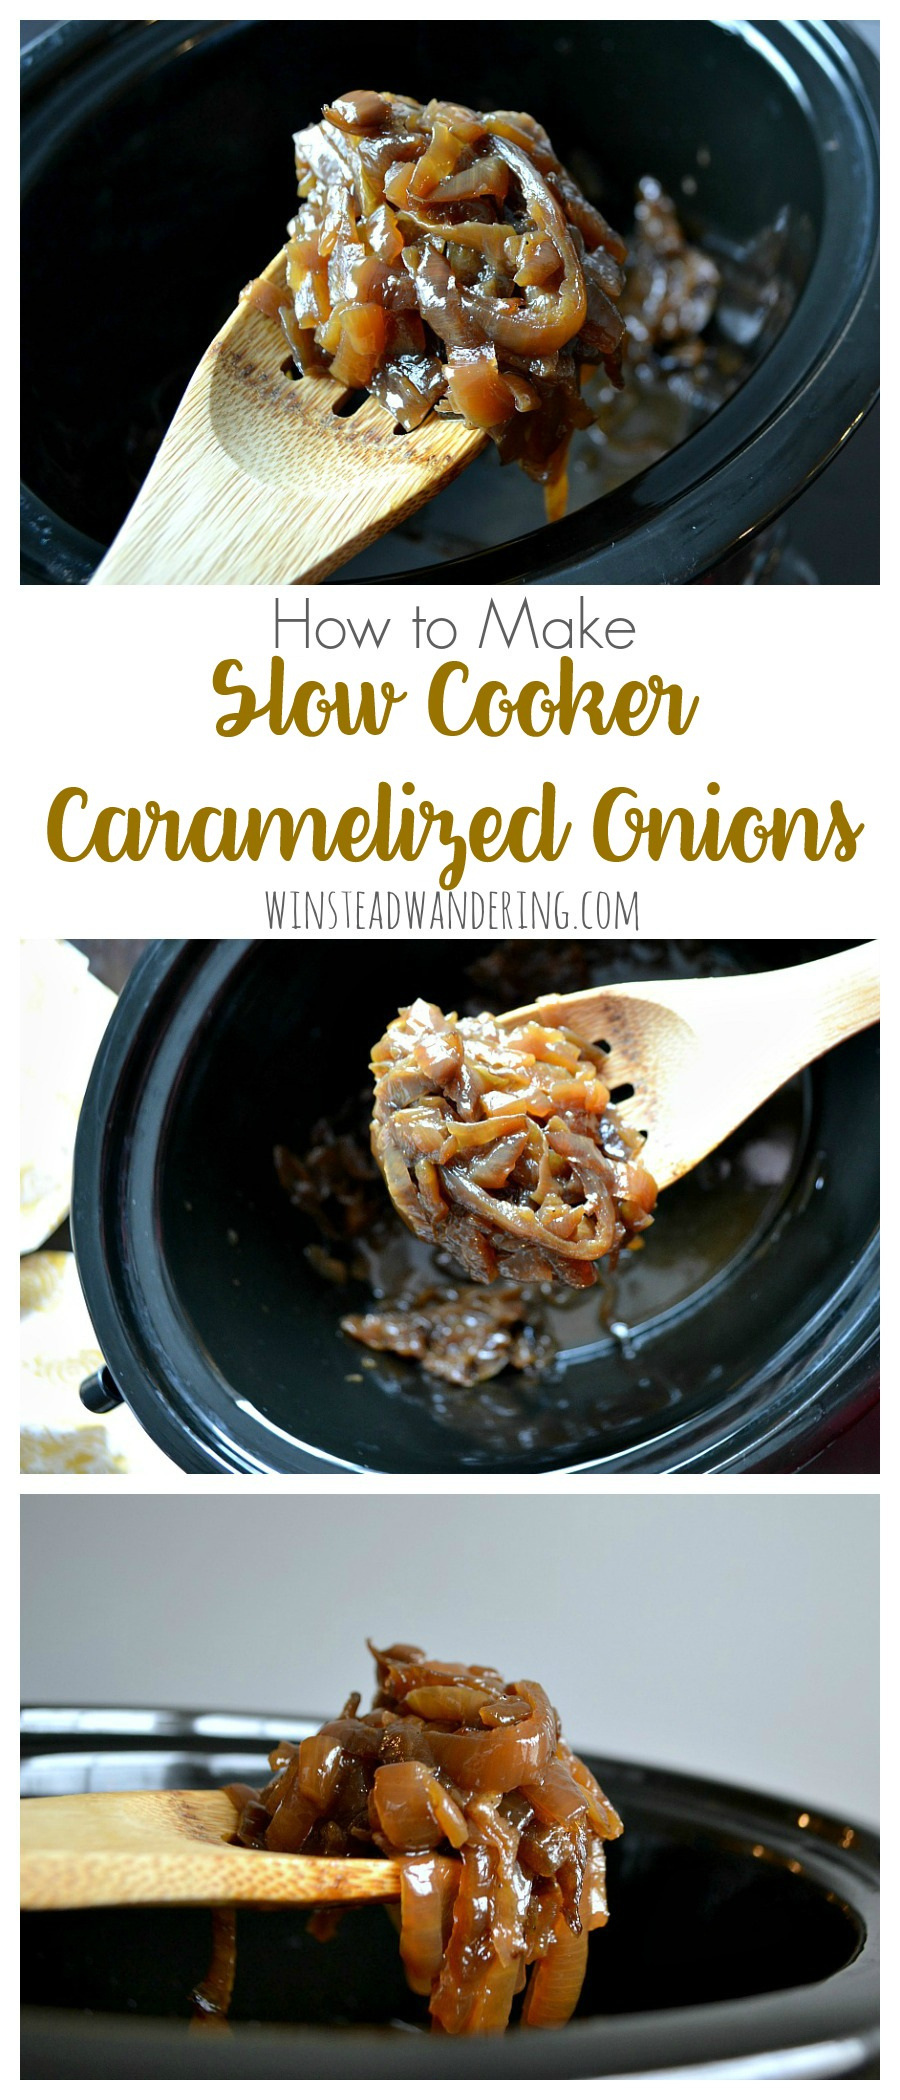 With their deep color and they're surprisingly sweet and appealing taste, you really need to know how to make slow cooker caramelized onions!